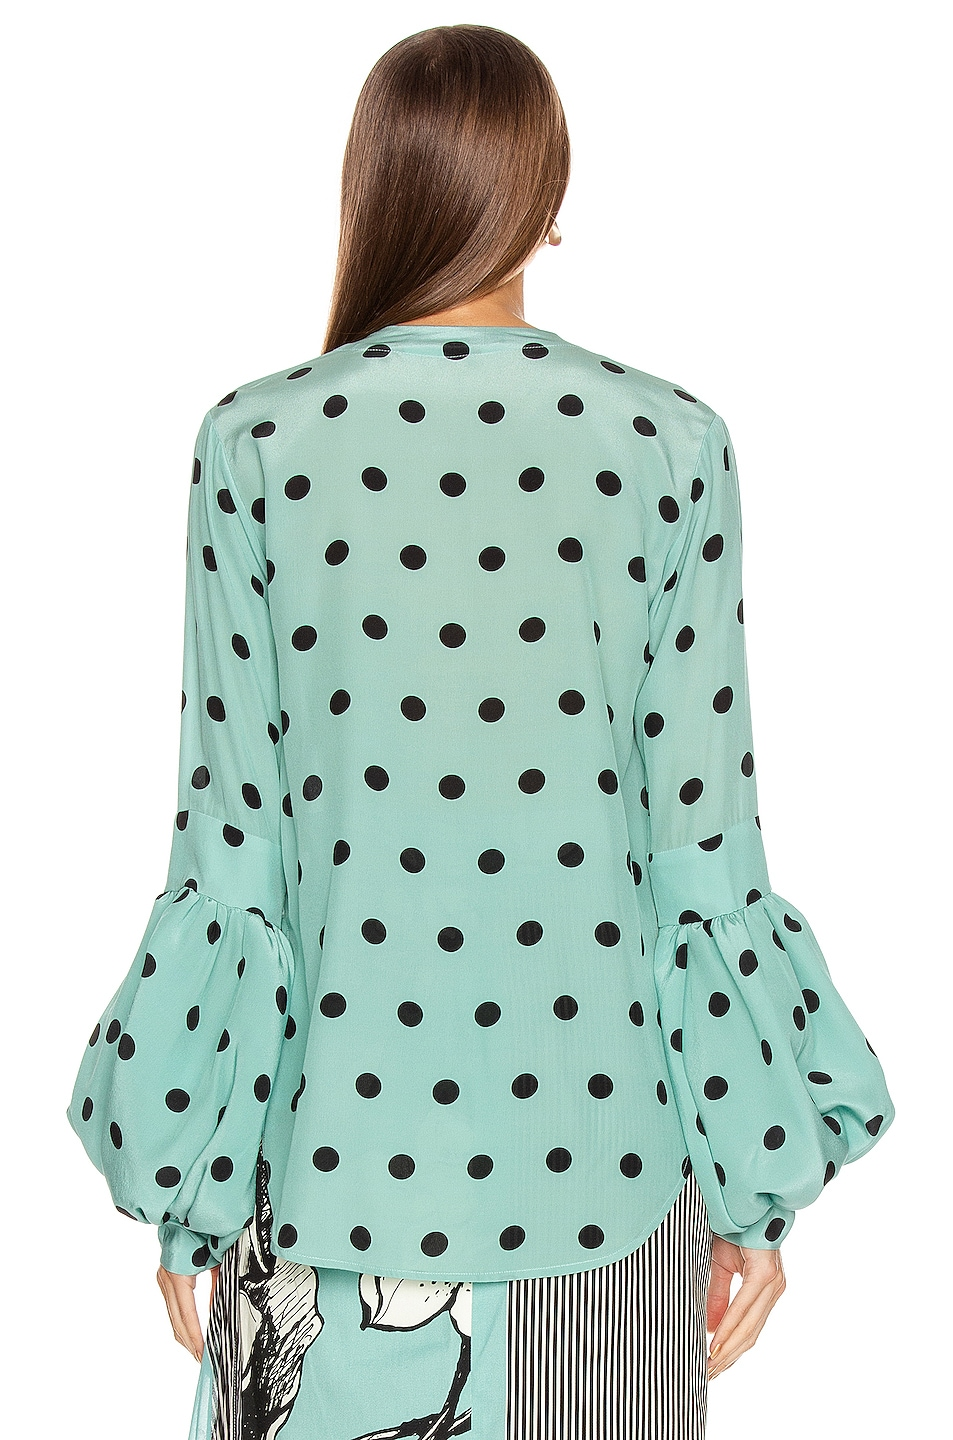 Image 4 of SILVIA TCHERASSI Barbara Blouse in Aqua Polka Dots